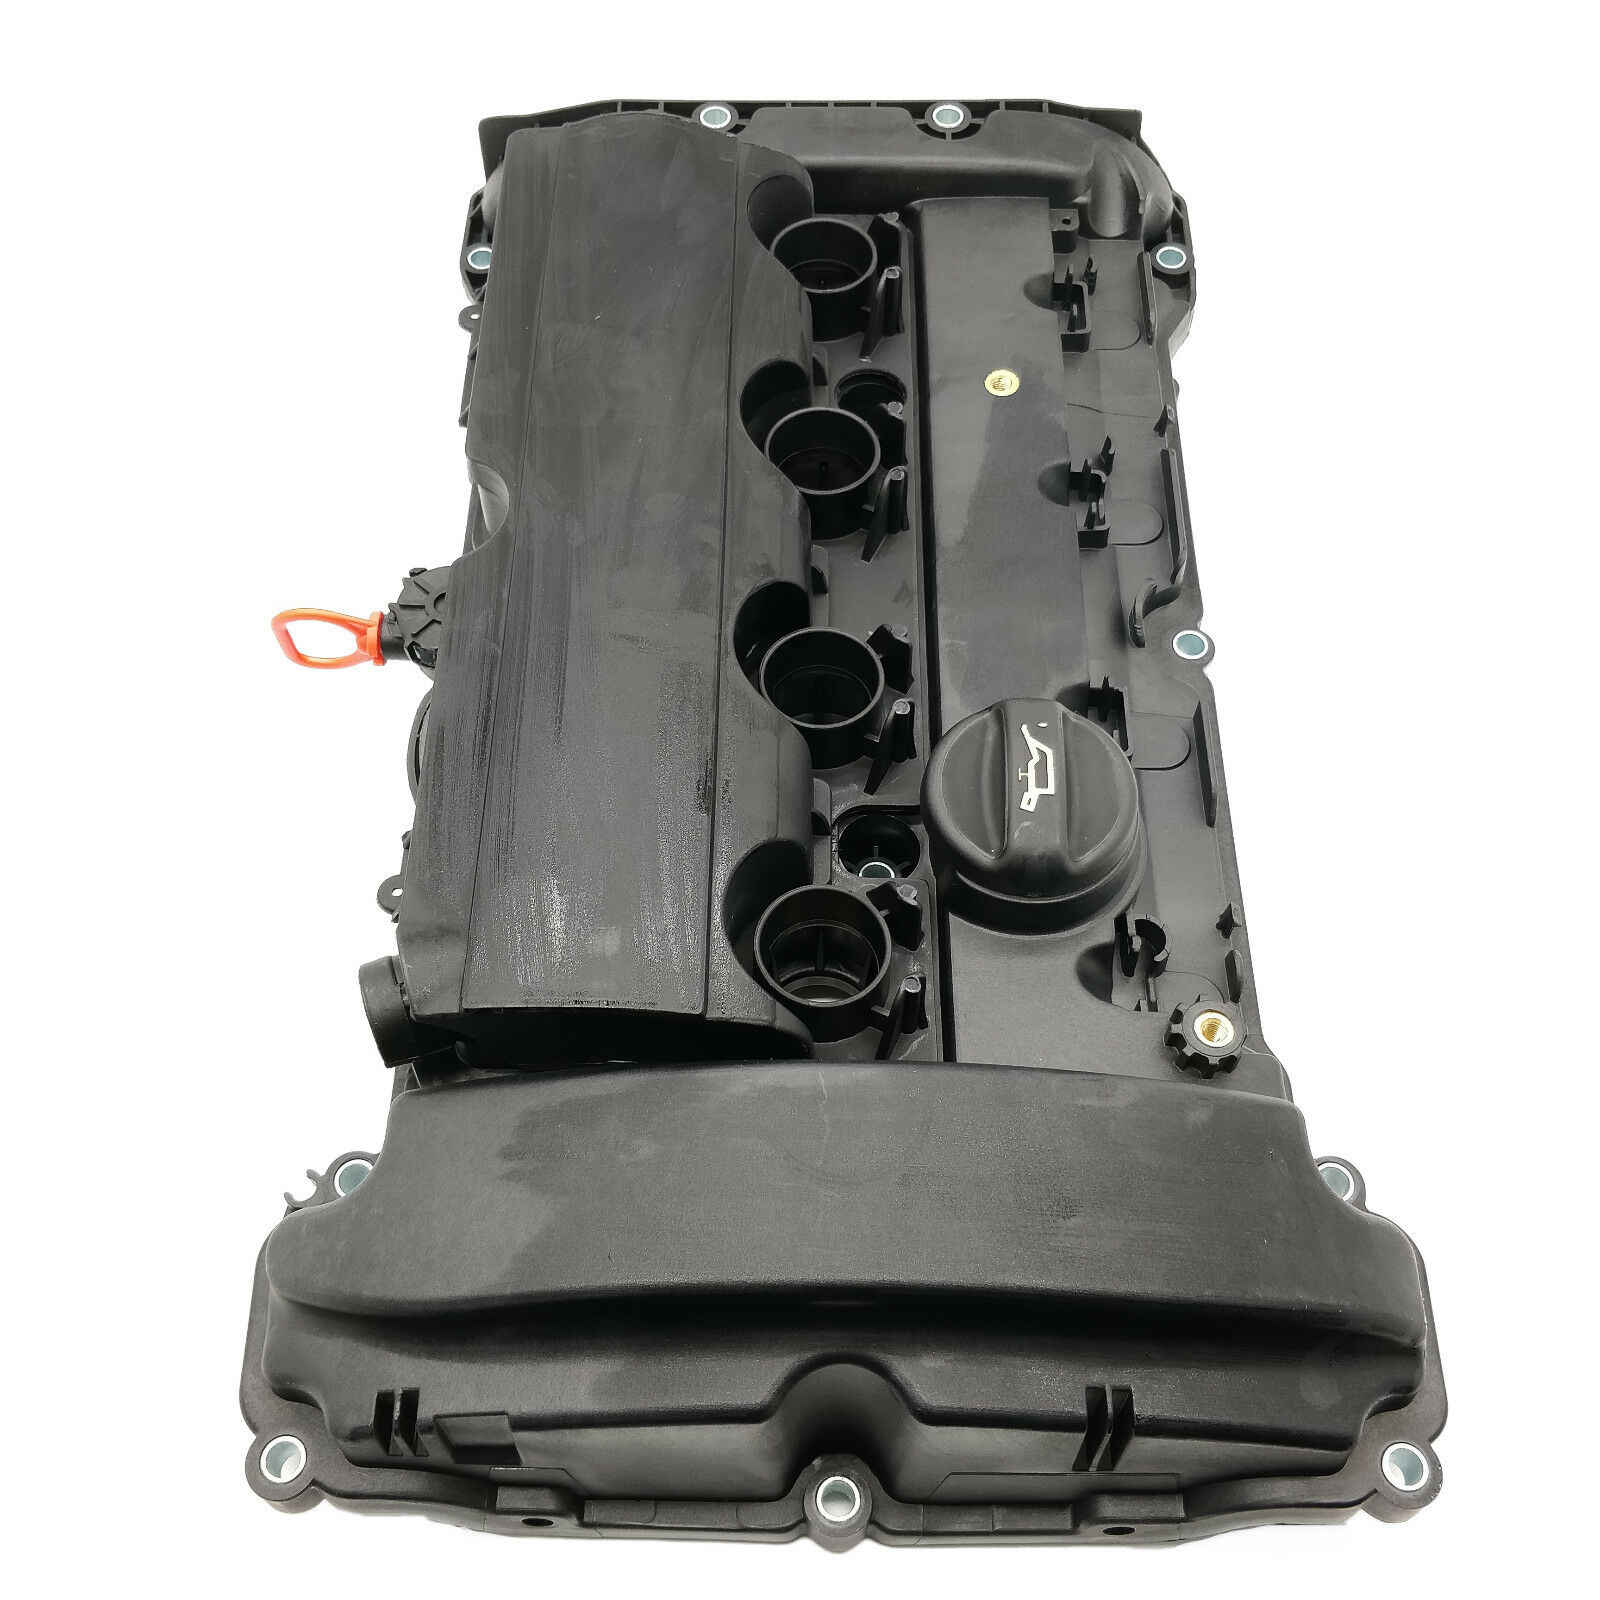 New Engine Valve Cover for 2007-2012 Mini Cooper S JCW R55 R56 R57 R60 1.6L N14